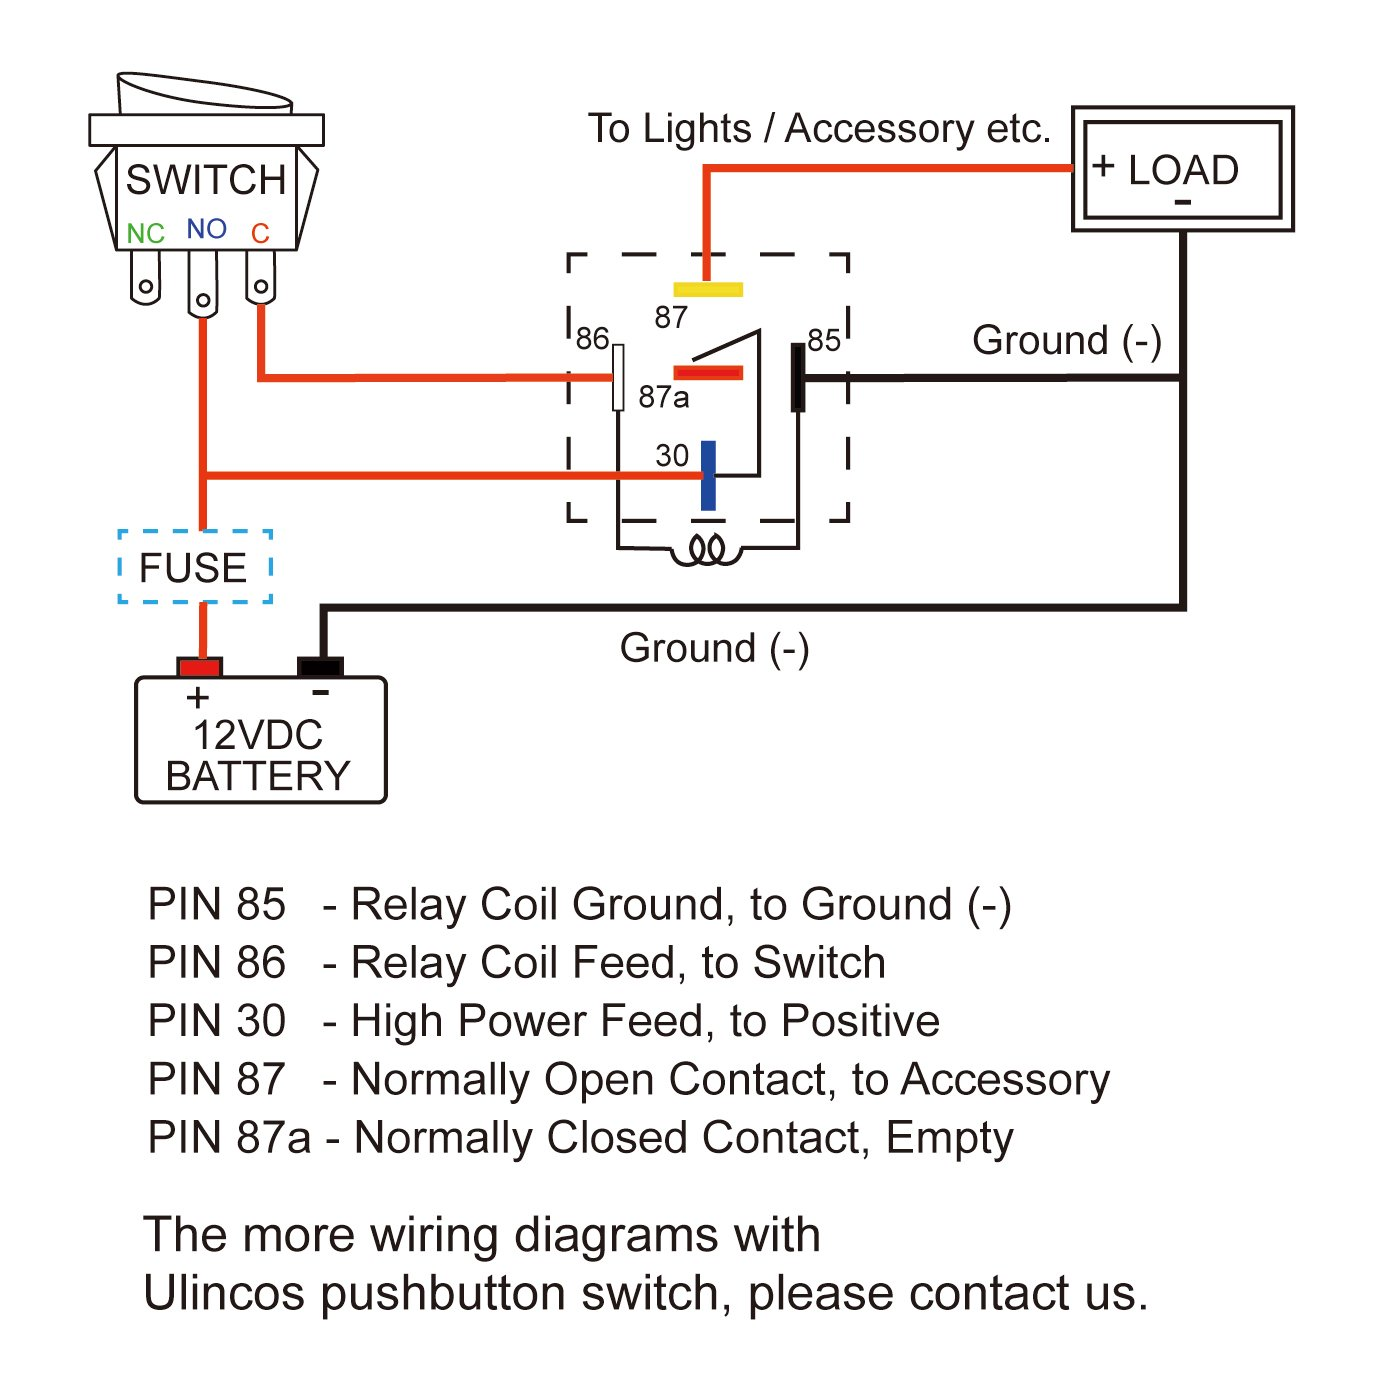 Relay Rls125 12 Vcd Wiring Diagram Library Normally Open Amazoncom Ulincos Auto U1914 With 14awg Wire Harness 12v Dc 30